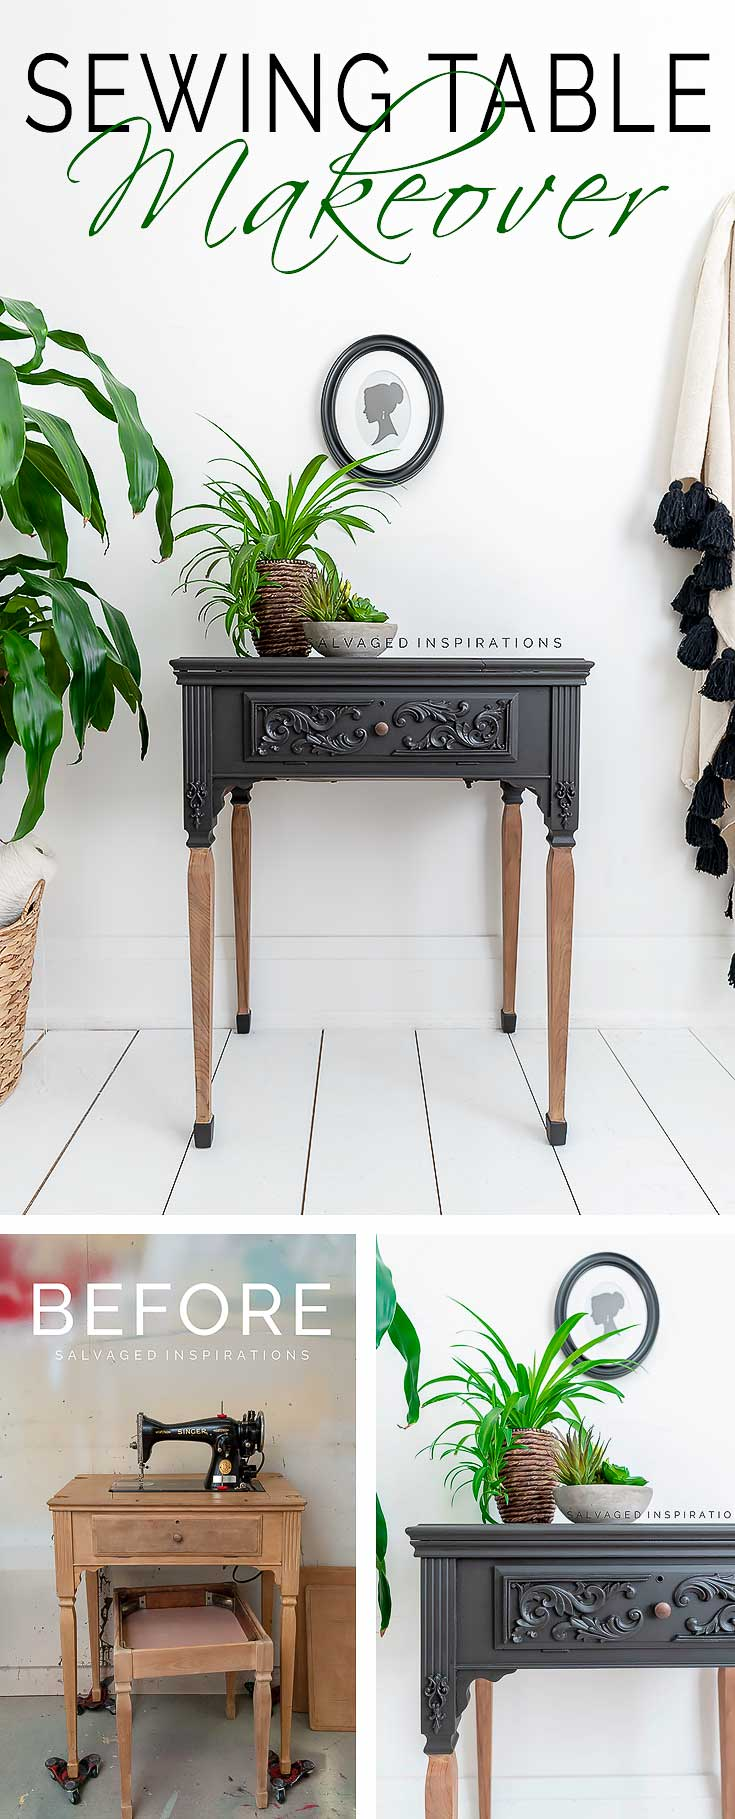 Sewing Cabinet Makeover - PIN